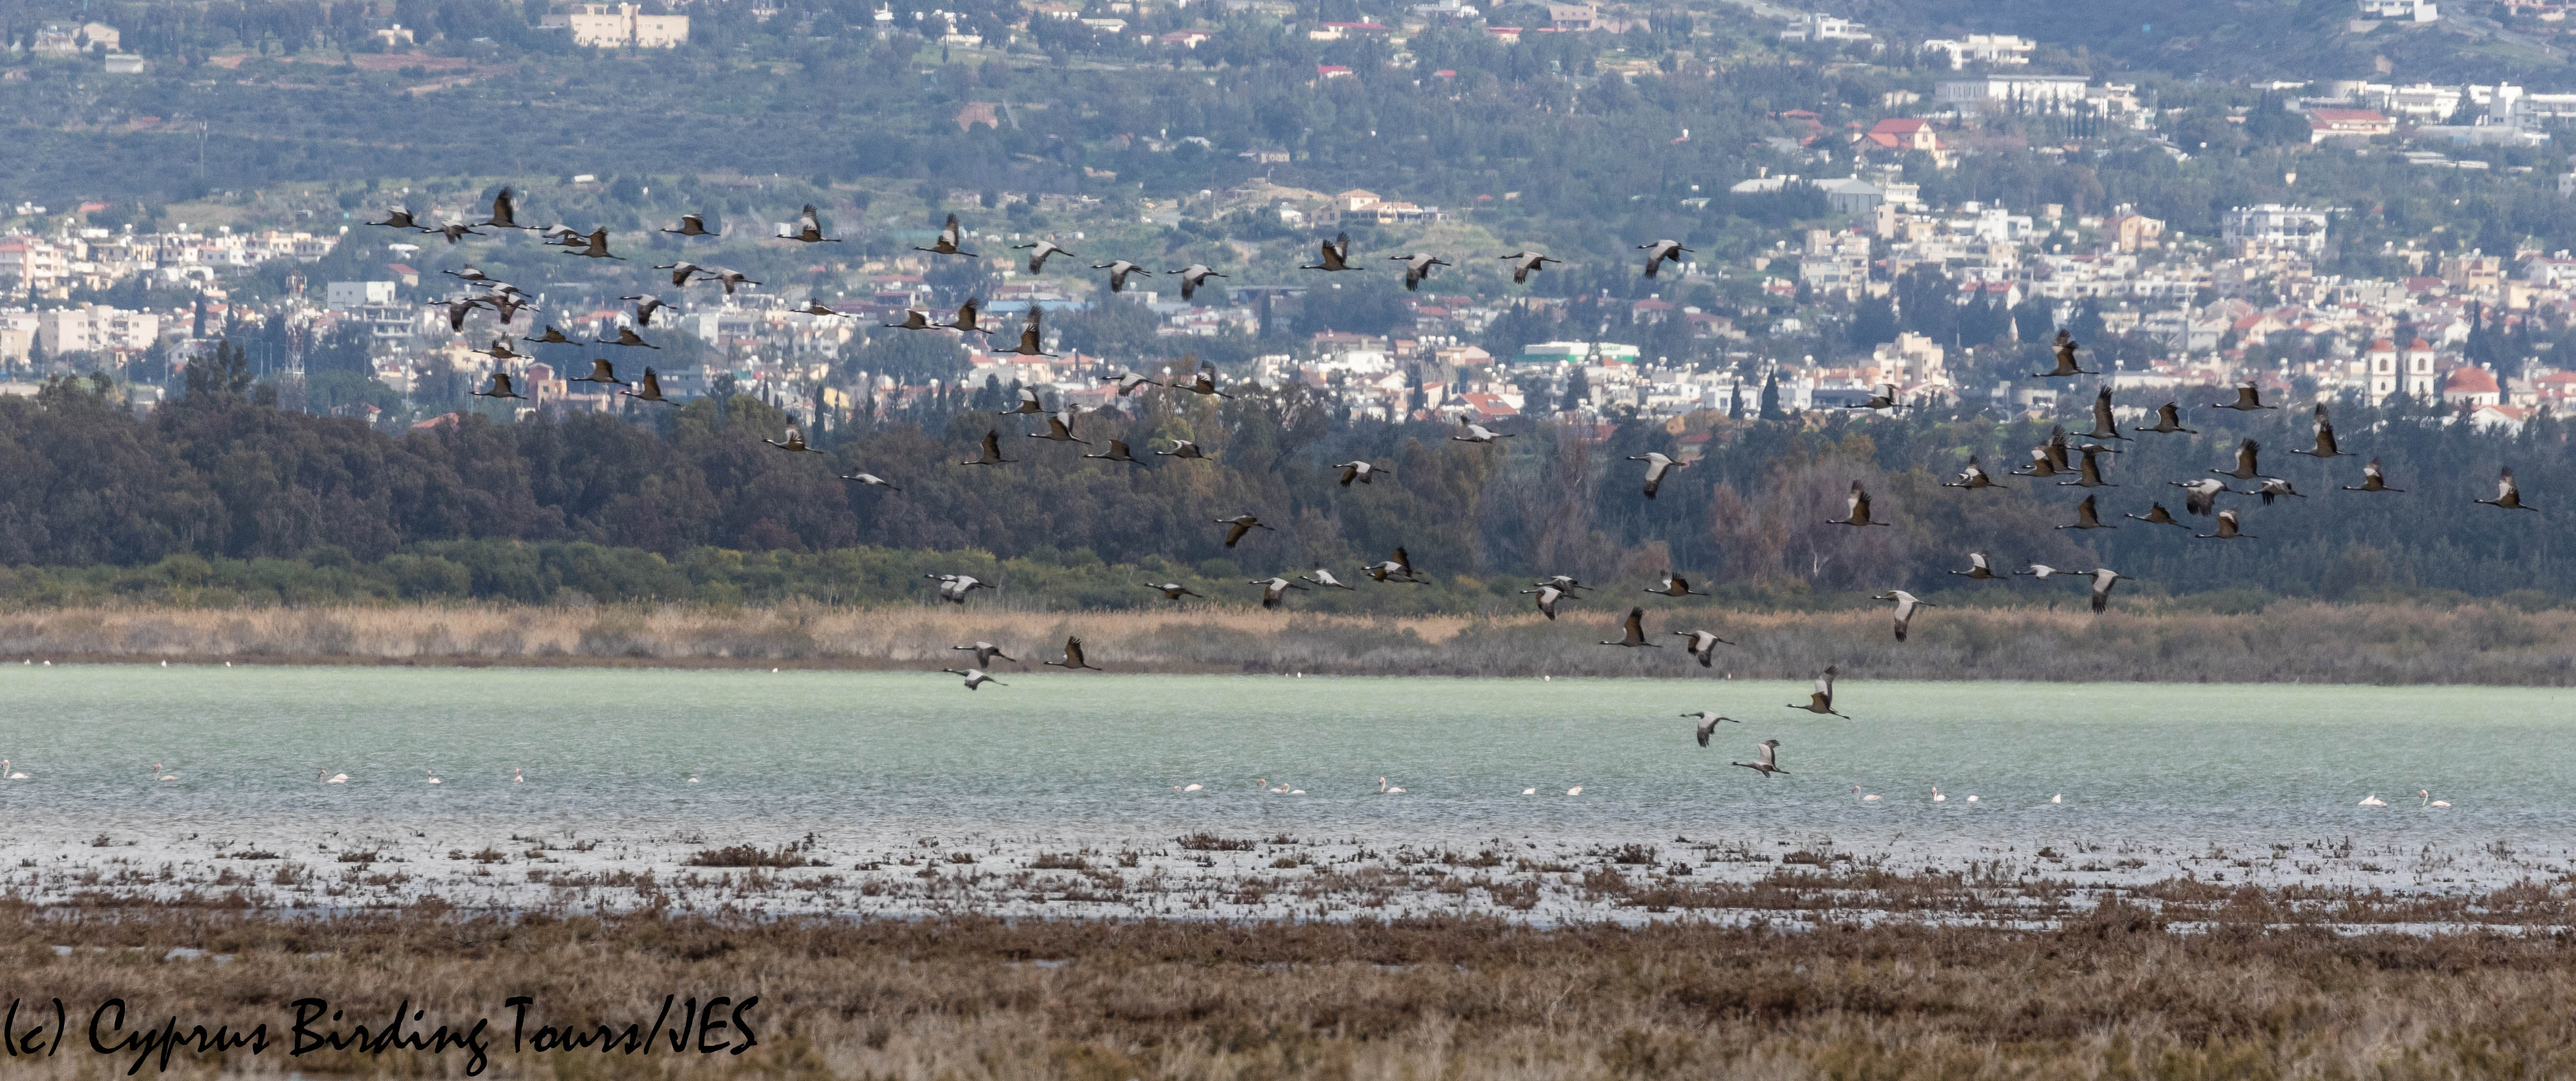 Demoiselle Crane 3, Akrotiri Salt Lake 16th March 2019 (c) Cyprus Birding Tours